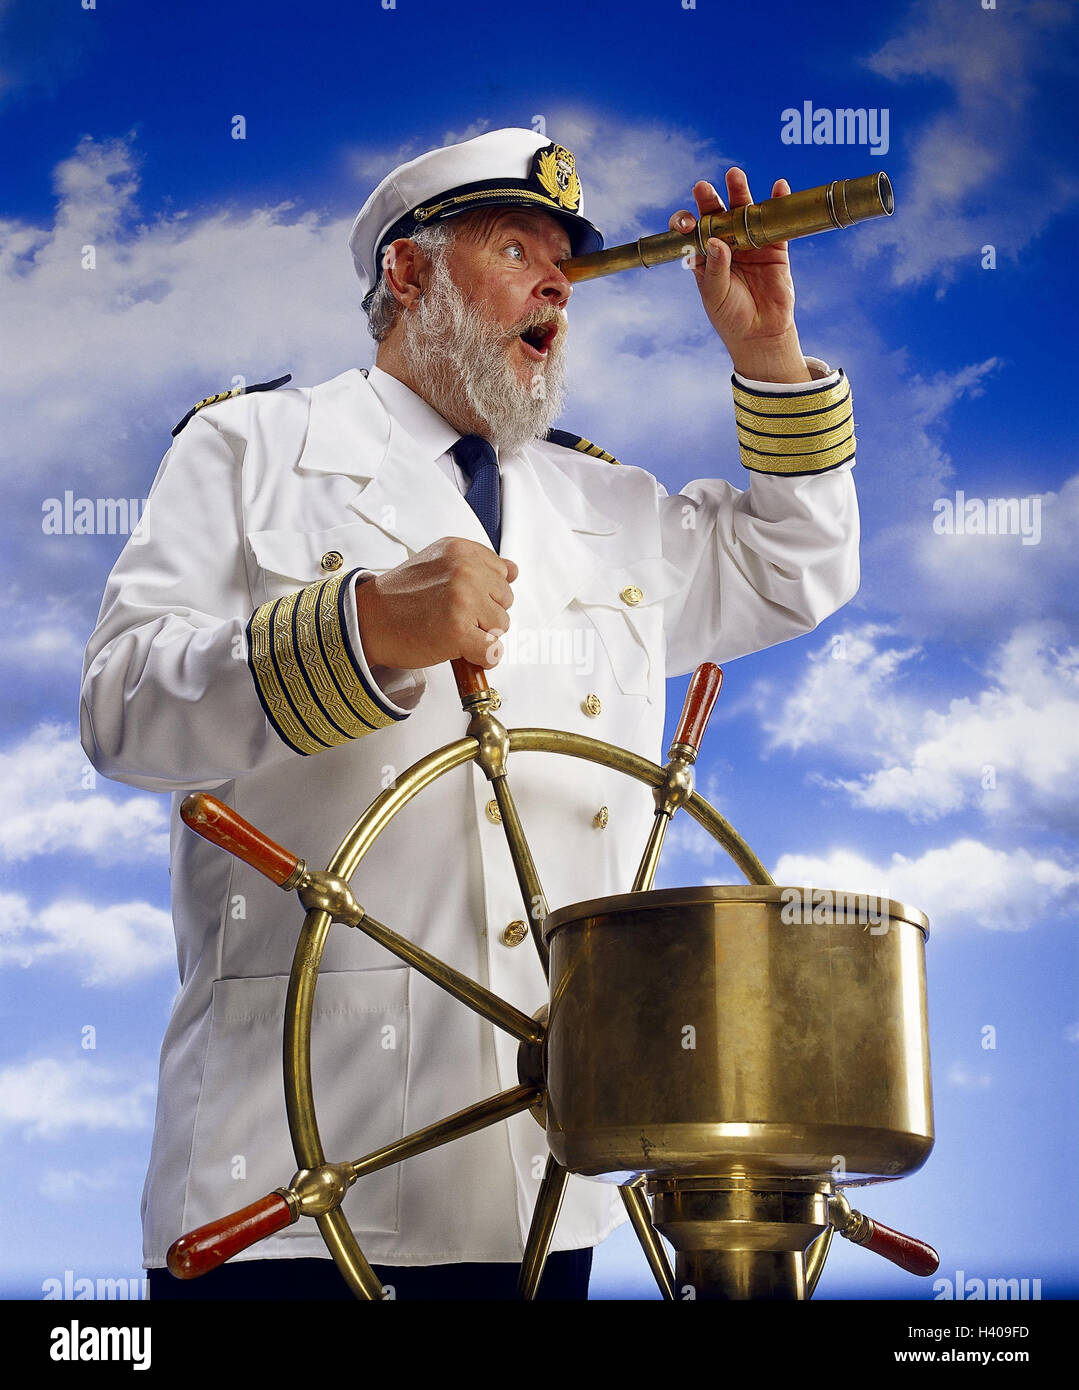 Composing, captain, tax, telescope, facial play, astonishment, cloudy sky concepts, senior, observation, observe, - Stock Image